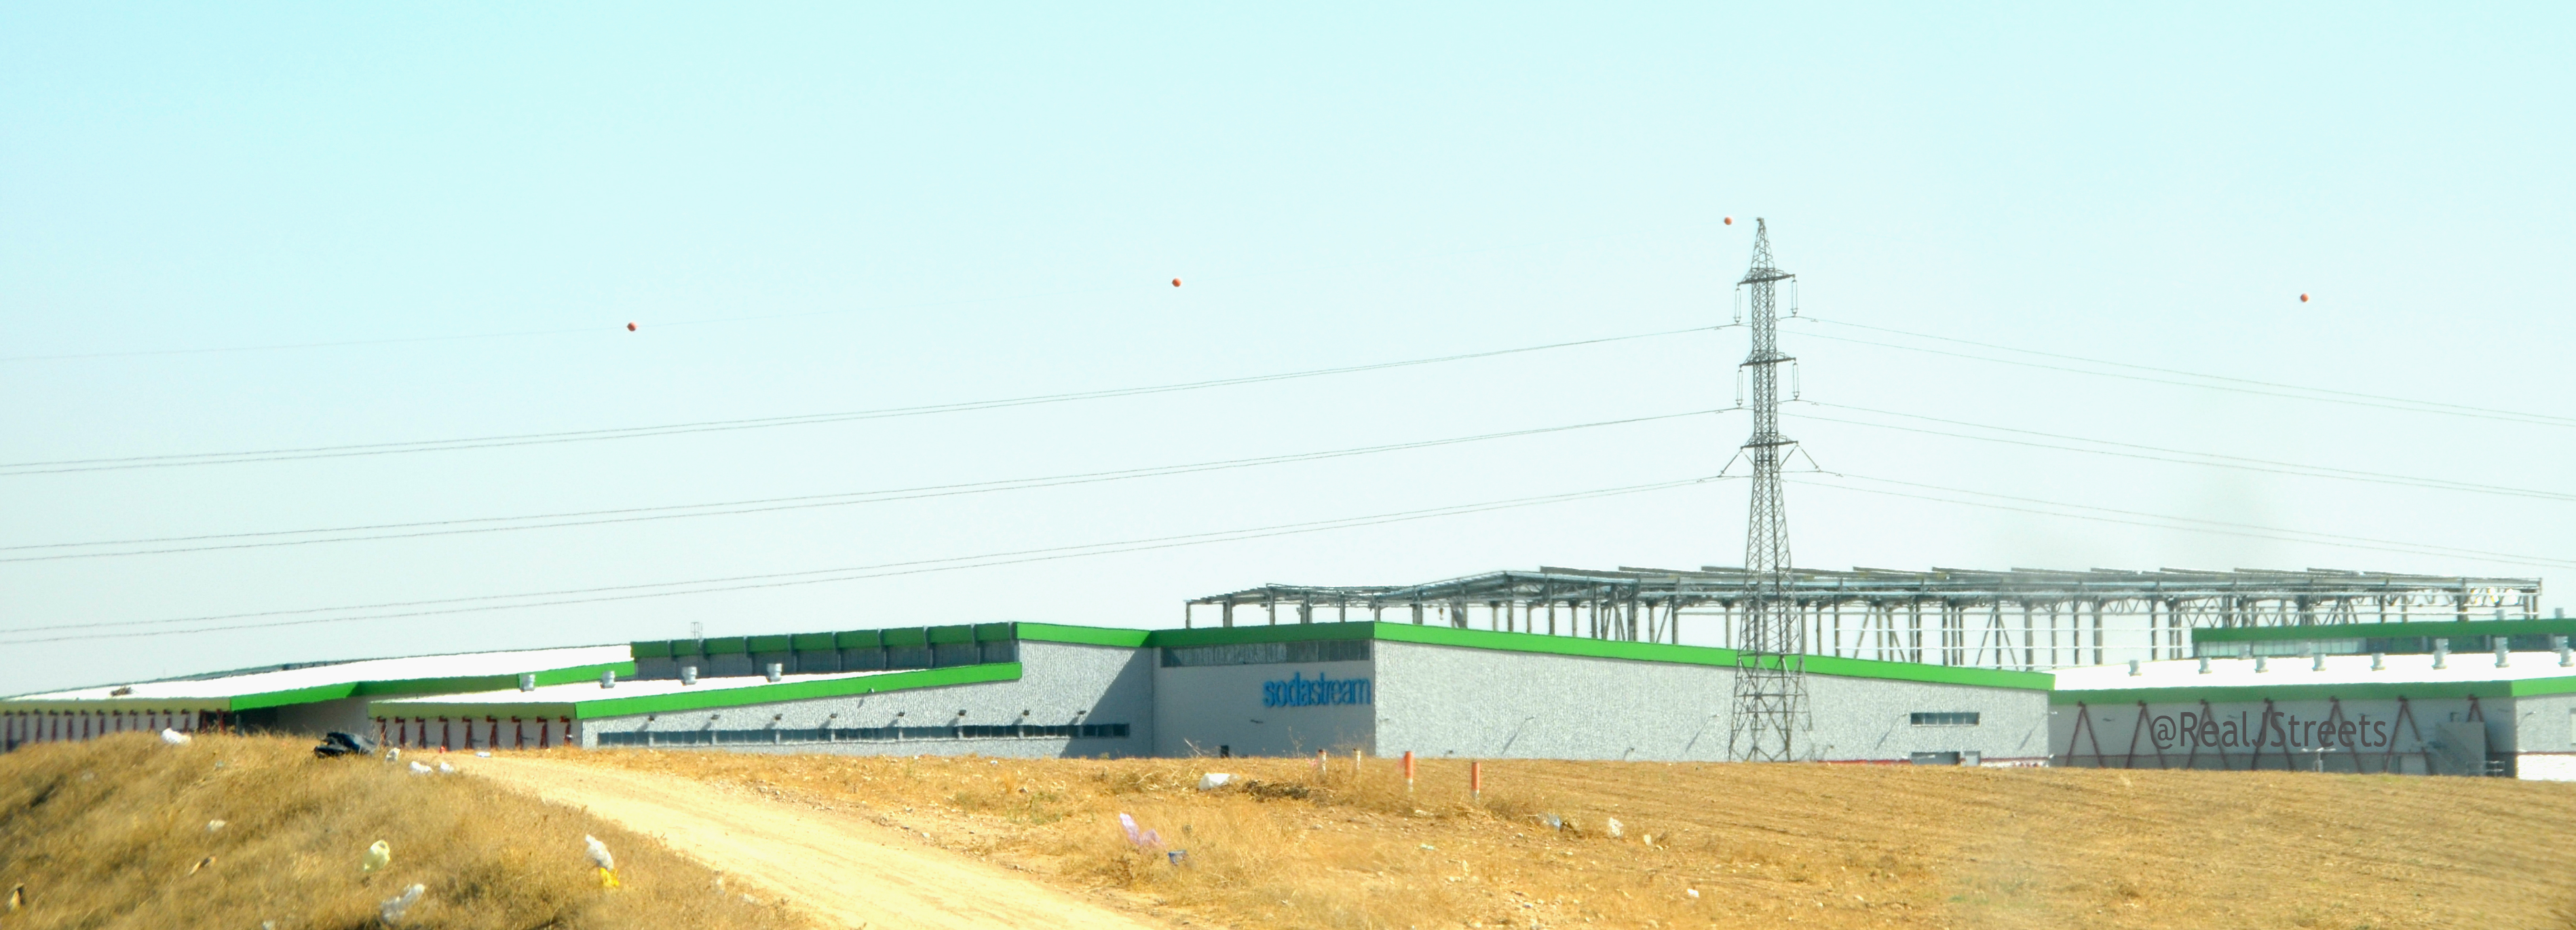 Soda Stream plant near Rahat